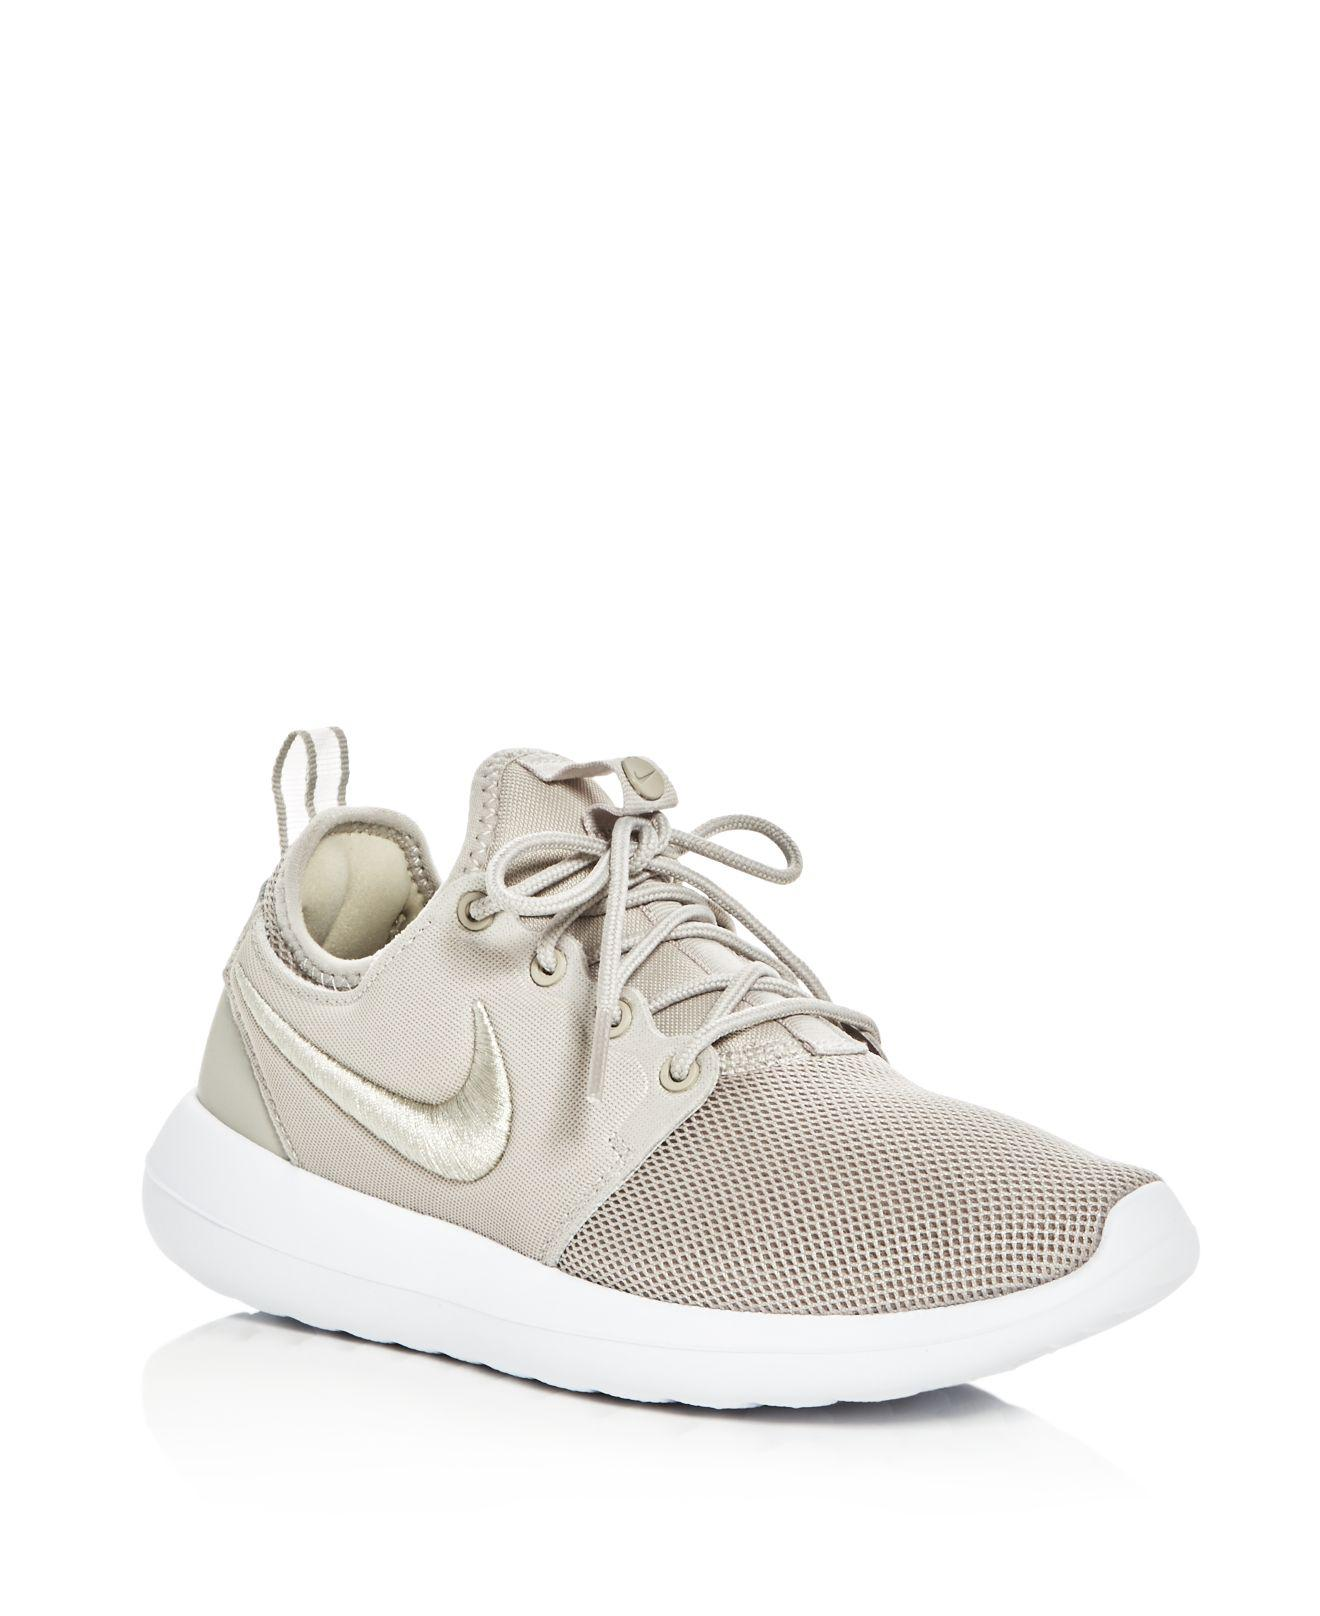 innovative design 676e0 795c8 Lyst - Nike Women s Roshe Two Lace Up Sneakers in White